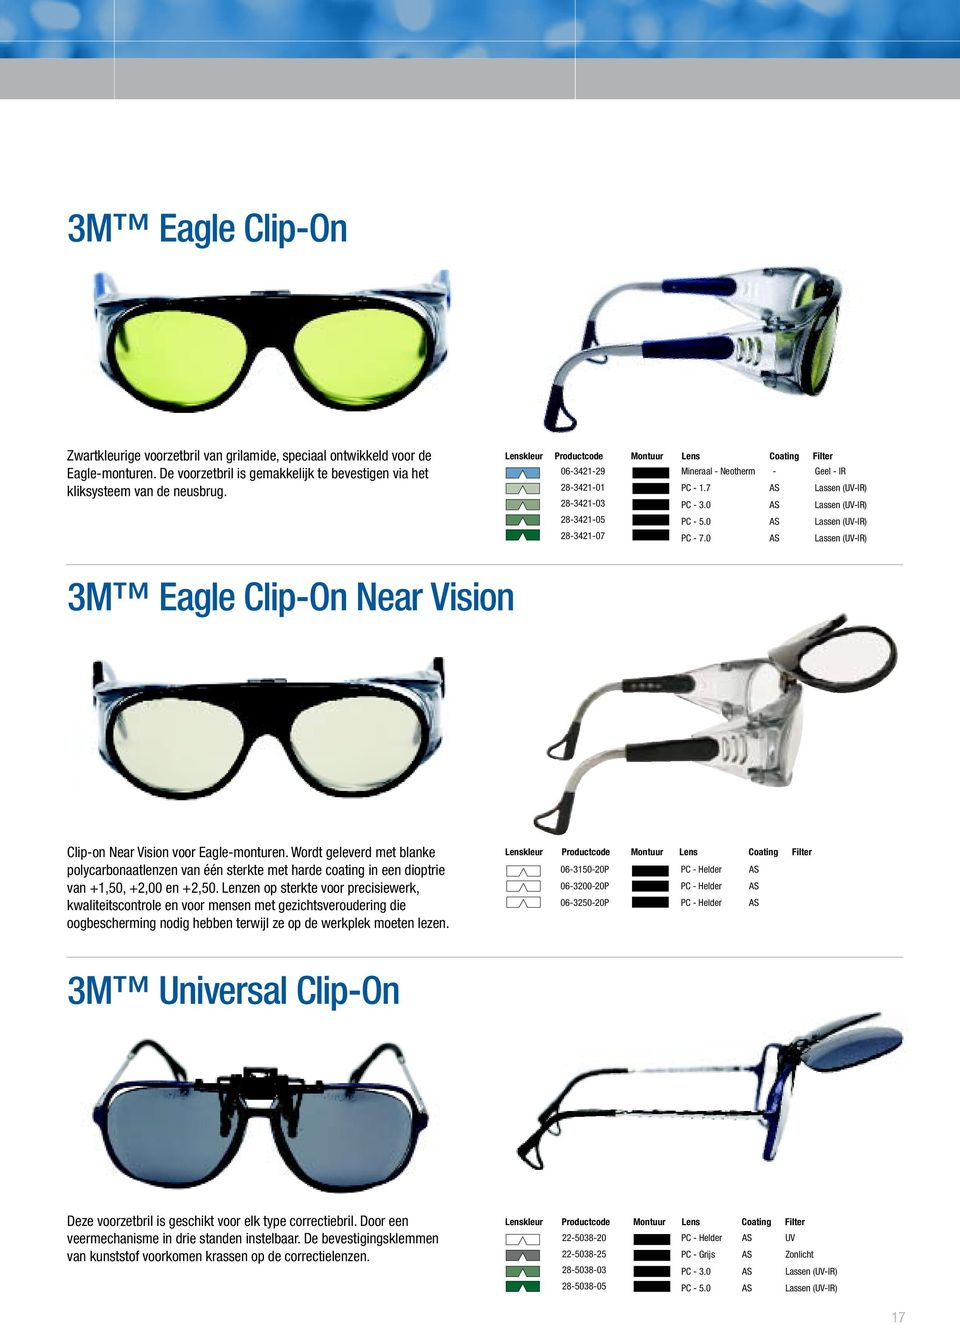 0 - Geel - IR Lassen (-IR) Lassen (-IR) Lassen (-IR) Lassen (-IR) 3M Eagle Clip-On Near Vision Clip-on Near Vision voor Eagle-monturen.